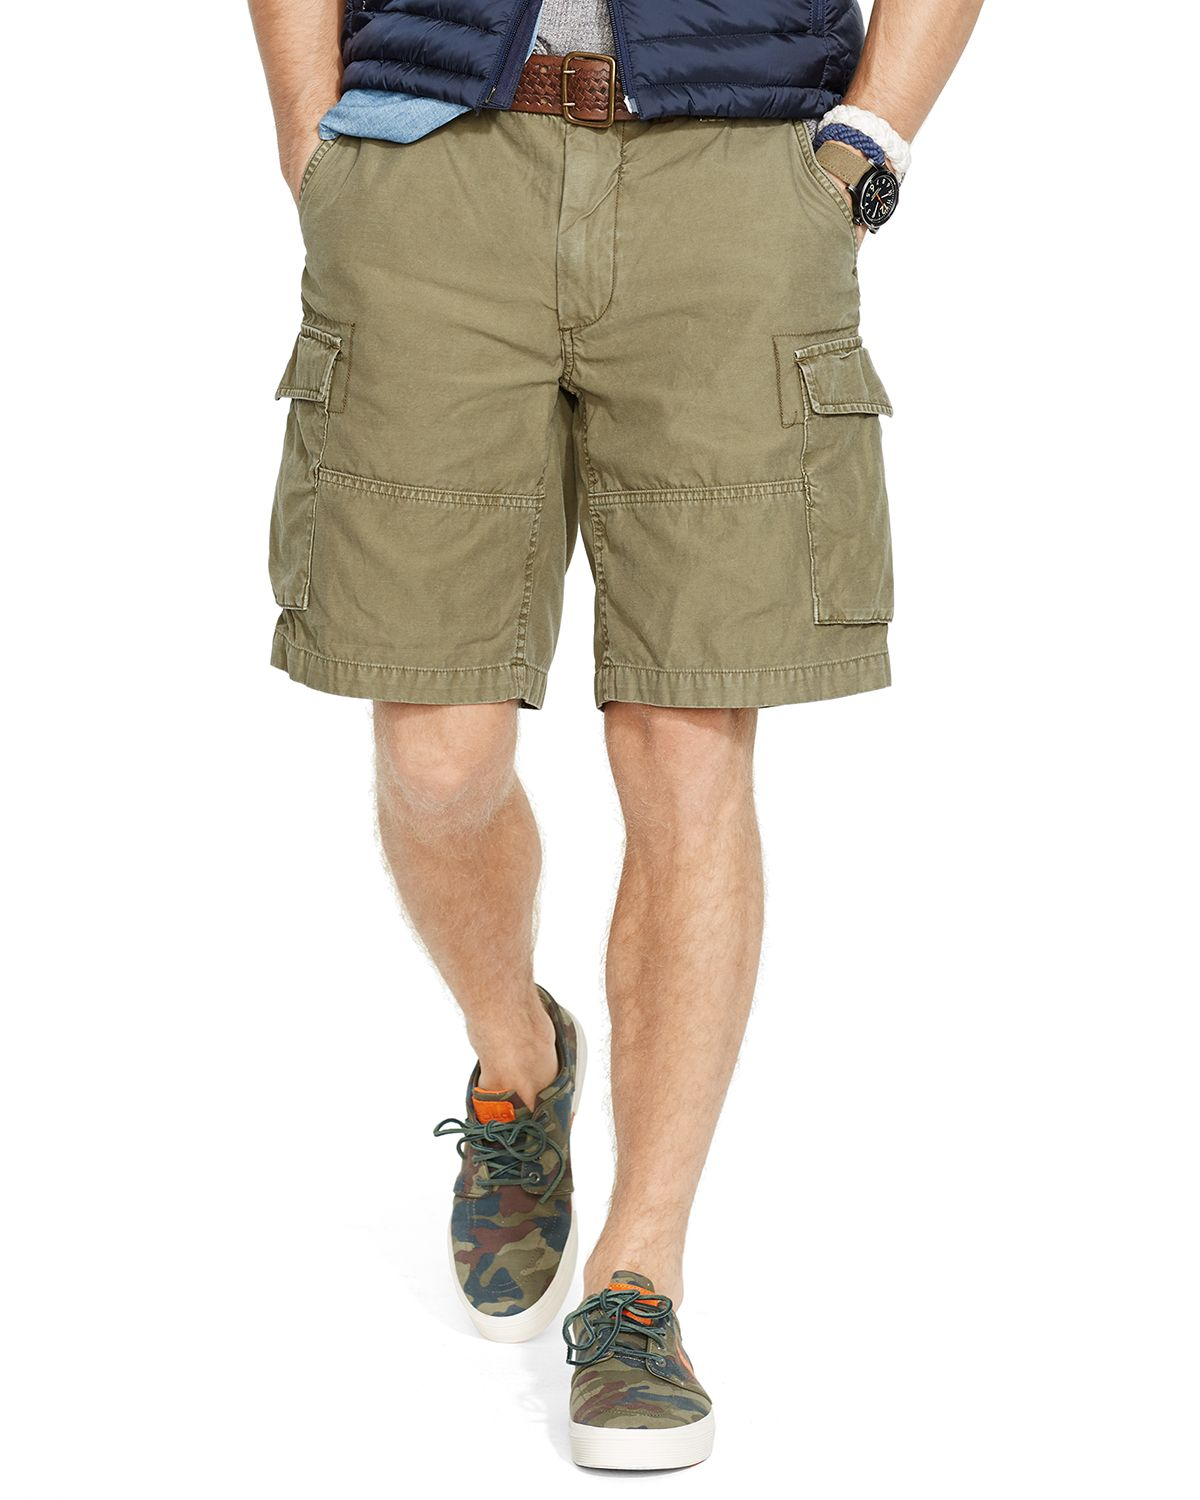 a88e9ccf9b ... spain inexpensive lyst ralph lauren polo commander cargo shorts classic  fit in 7520c 070a9 7690c a771c